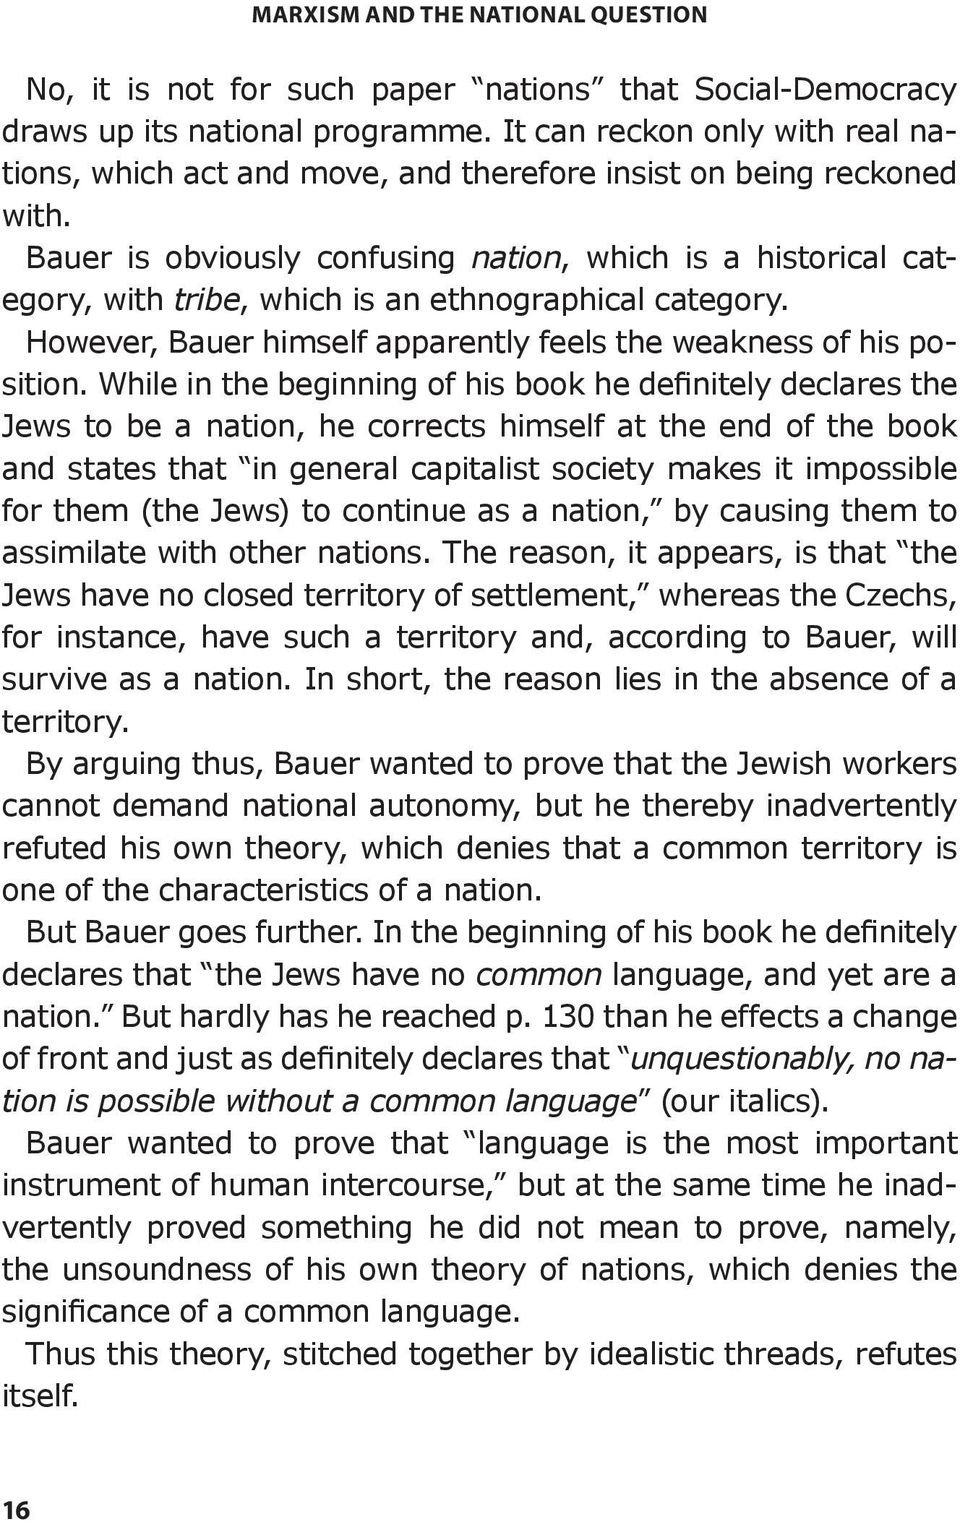 Bauer is obviously confusing nation, which is a historical category, with tribe, which is an ethnographical category. However, Bauer himself apparently feels the weakness of his position.